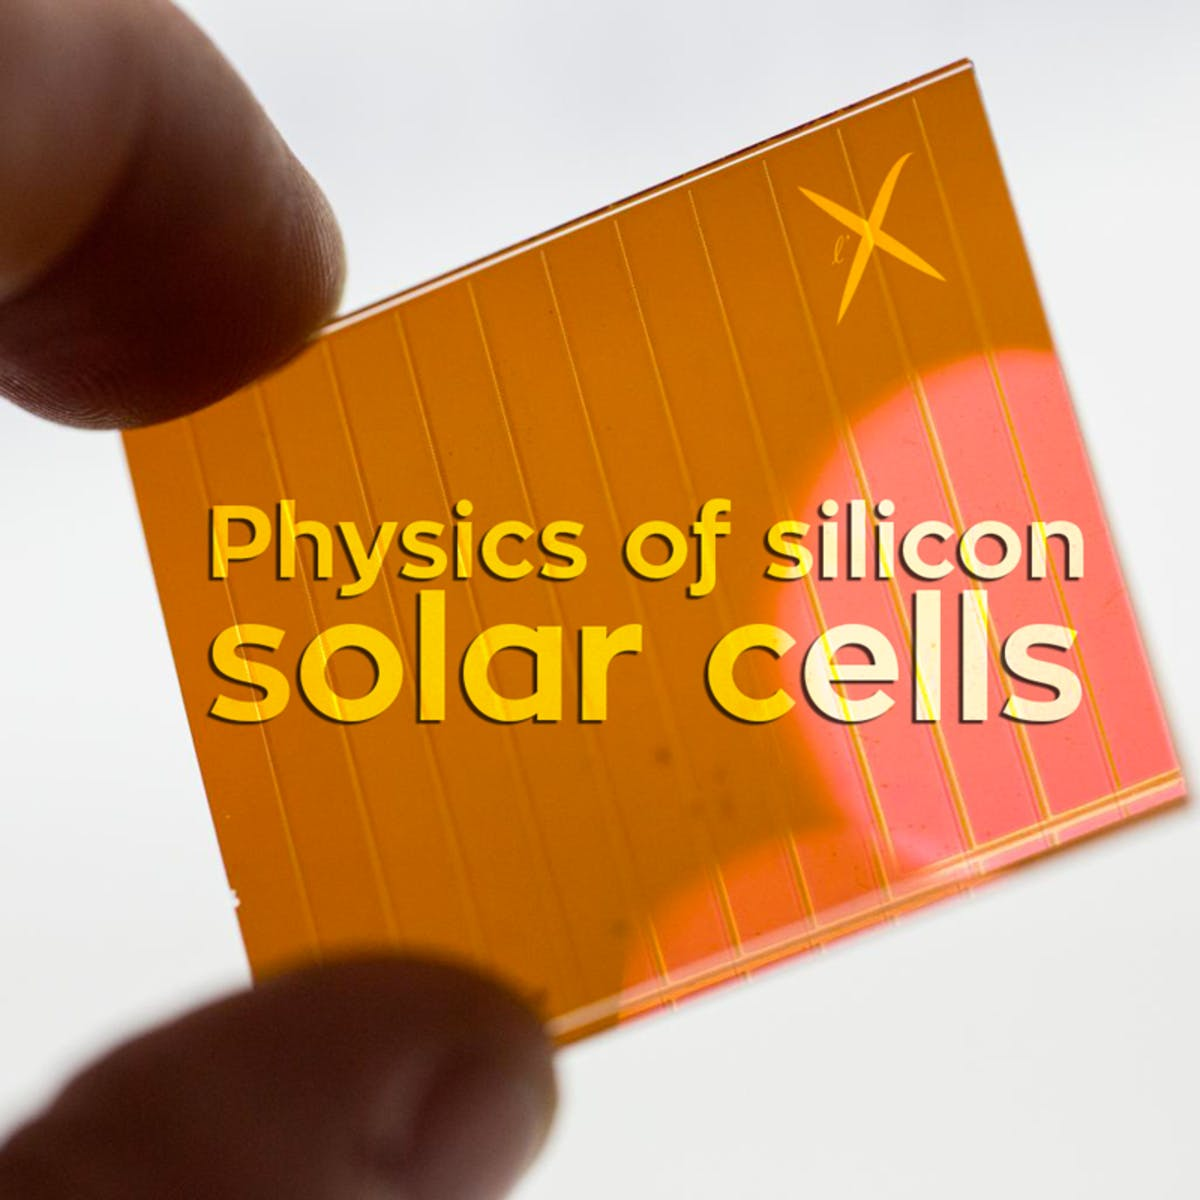 Physics of silicon solar cells